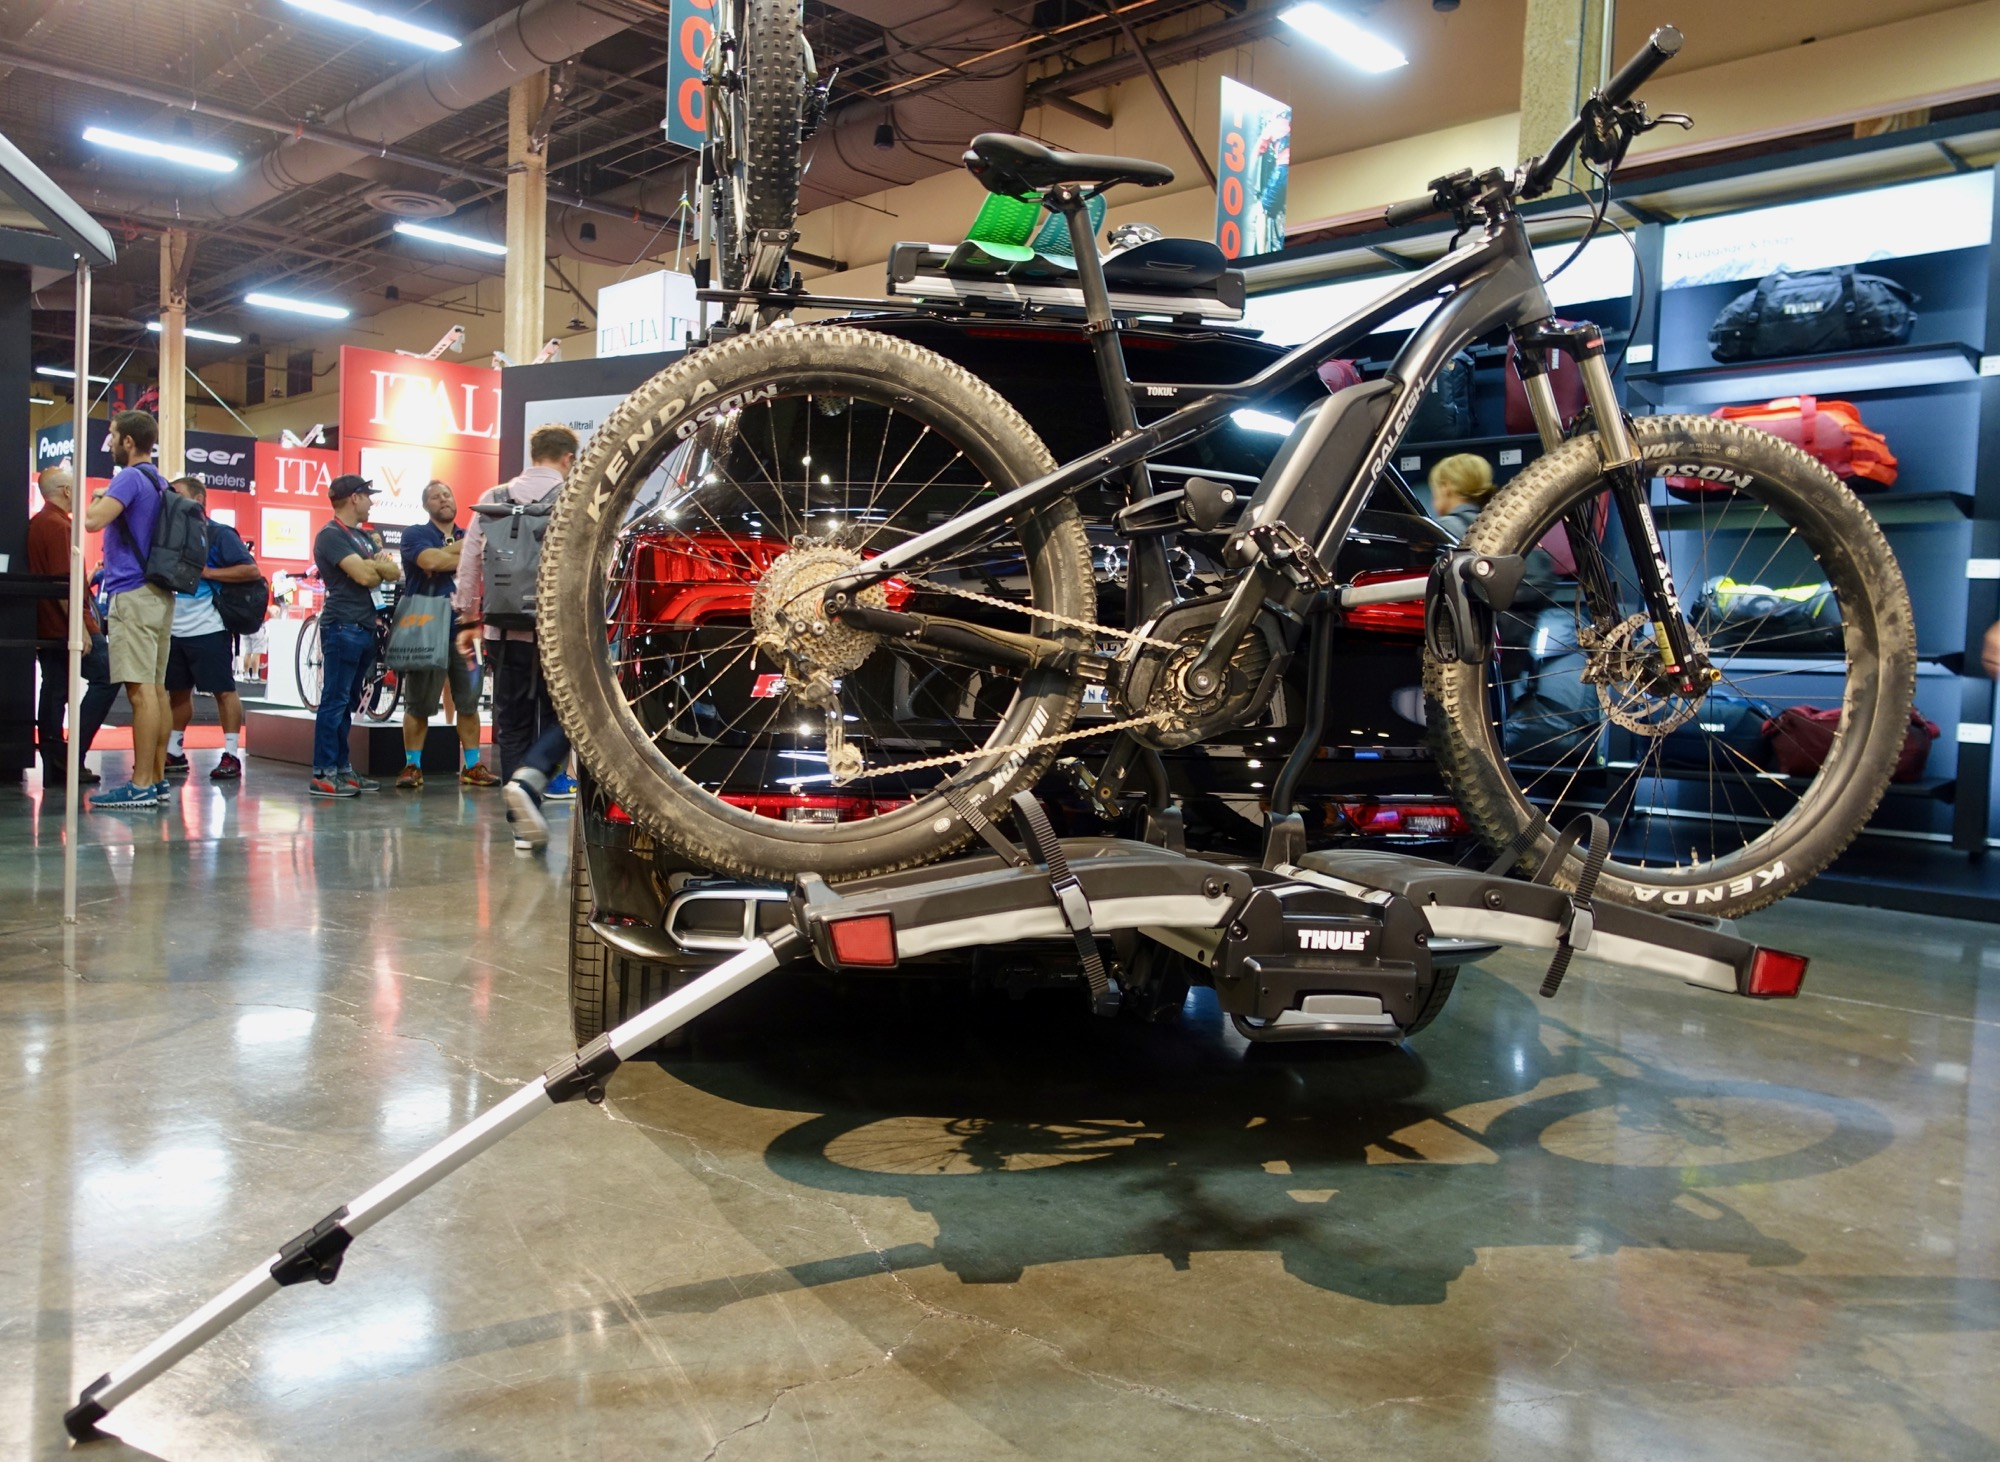 thule ebike hitch rack shows motorcycle